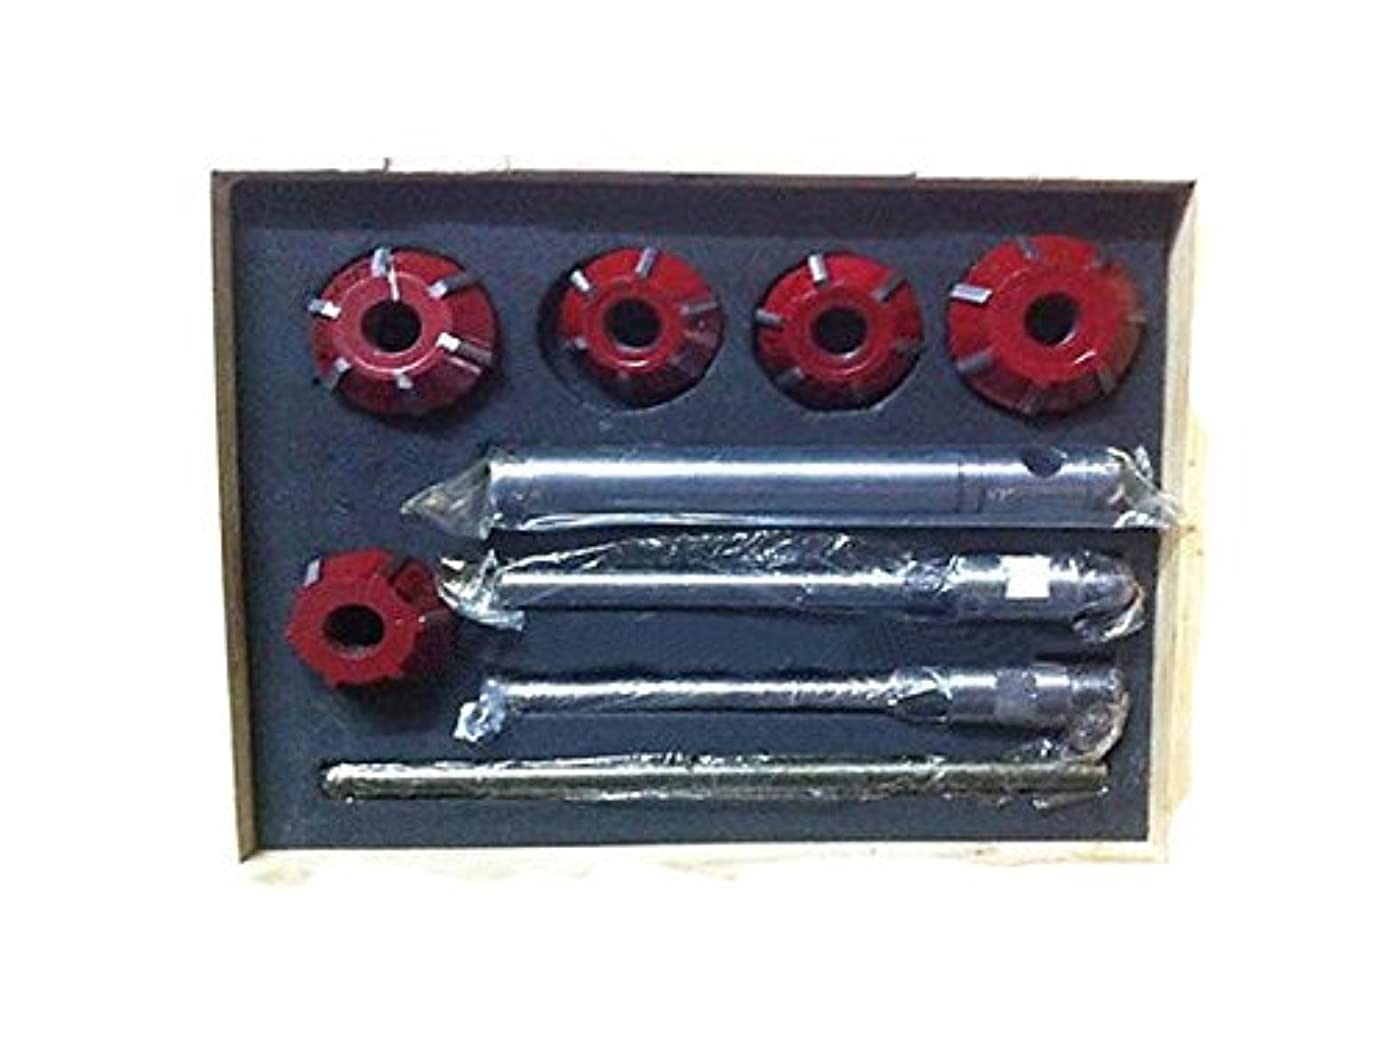 Carbide Valve Seat Cutter 5 Cutter Set for Vintage Car & Bikes 20 & 45 Degree